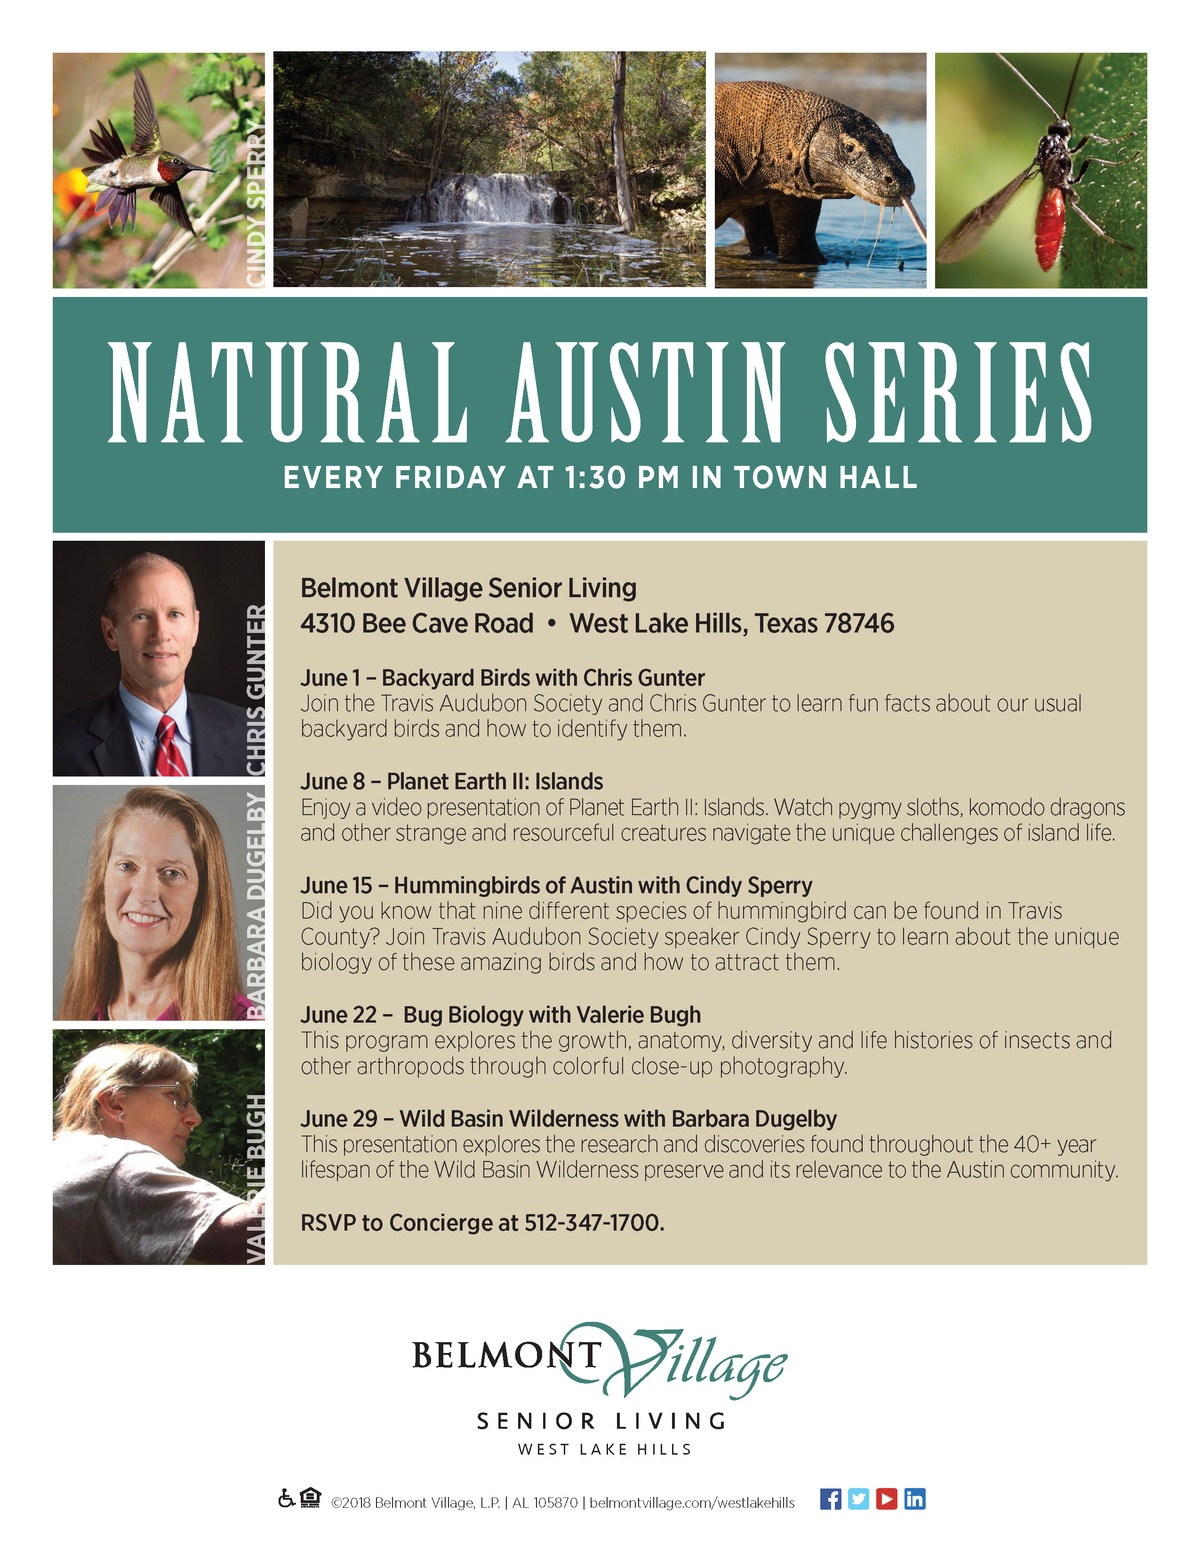 WLH_NaturalAustinSeries_June2018_flyer.png